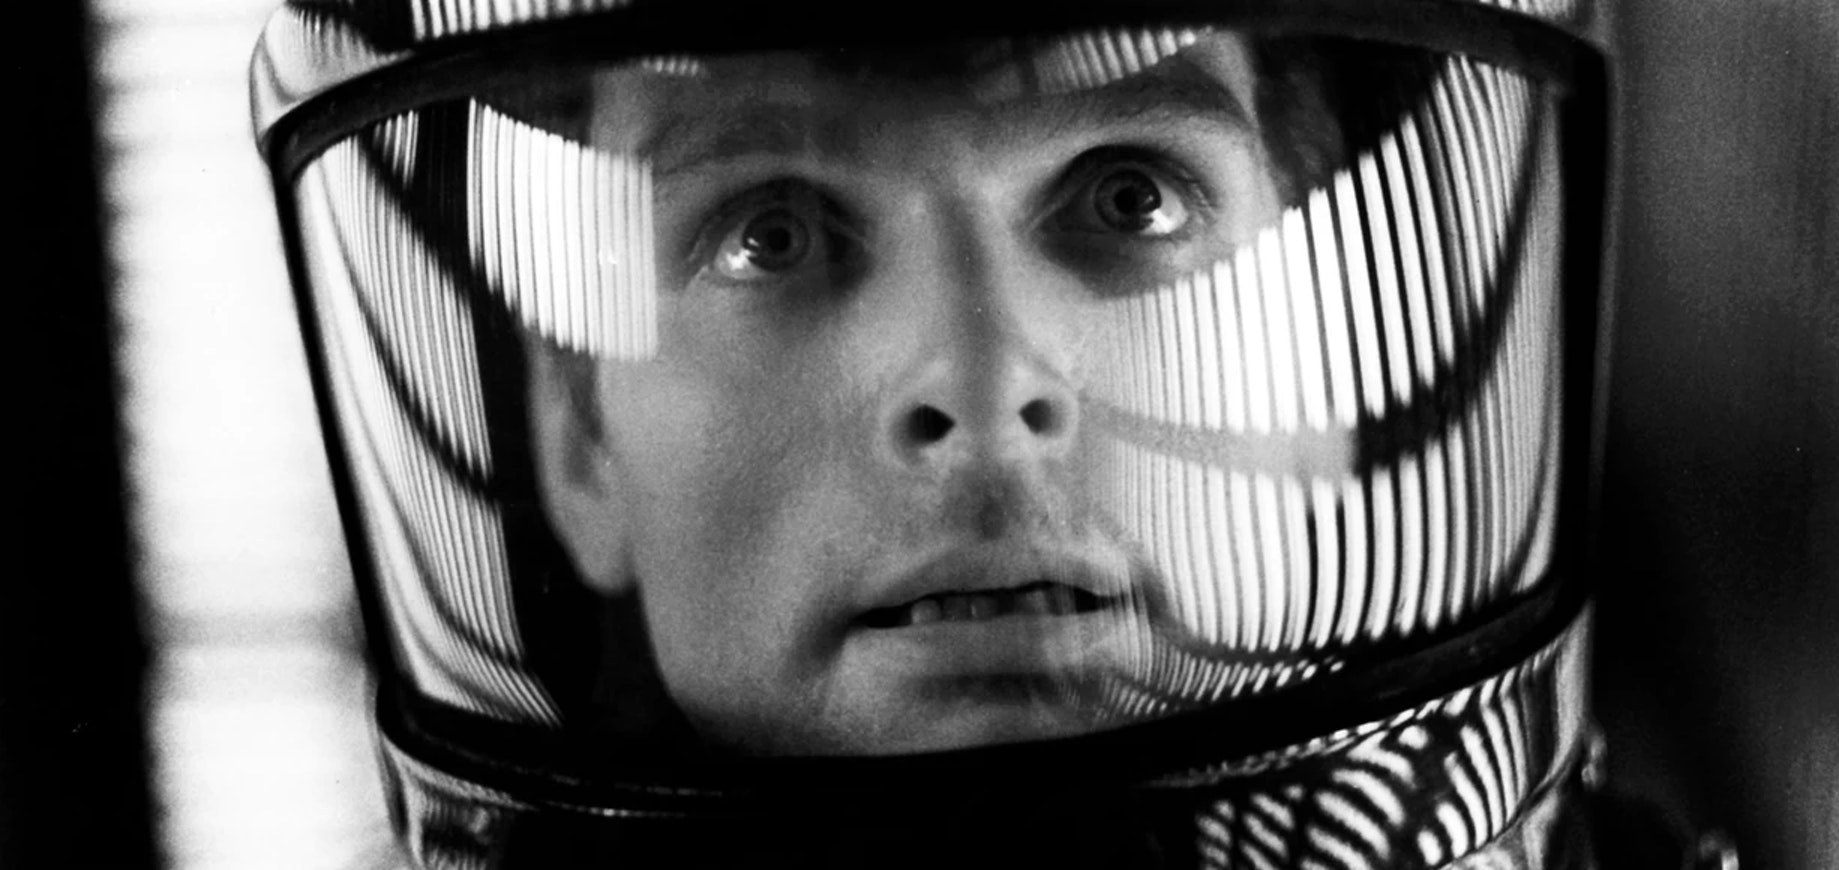 Stanley Kubrick's '2001: A Space Odyssey' pits Dave, pictured here, against HAL 9000, an A.I.-gone-rogue. The film was released in 1968.